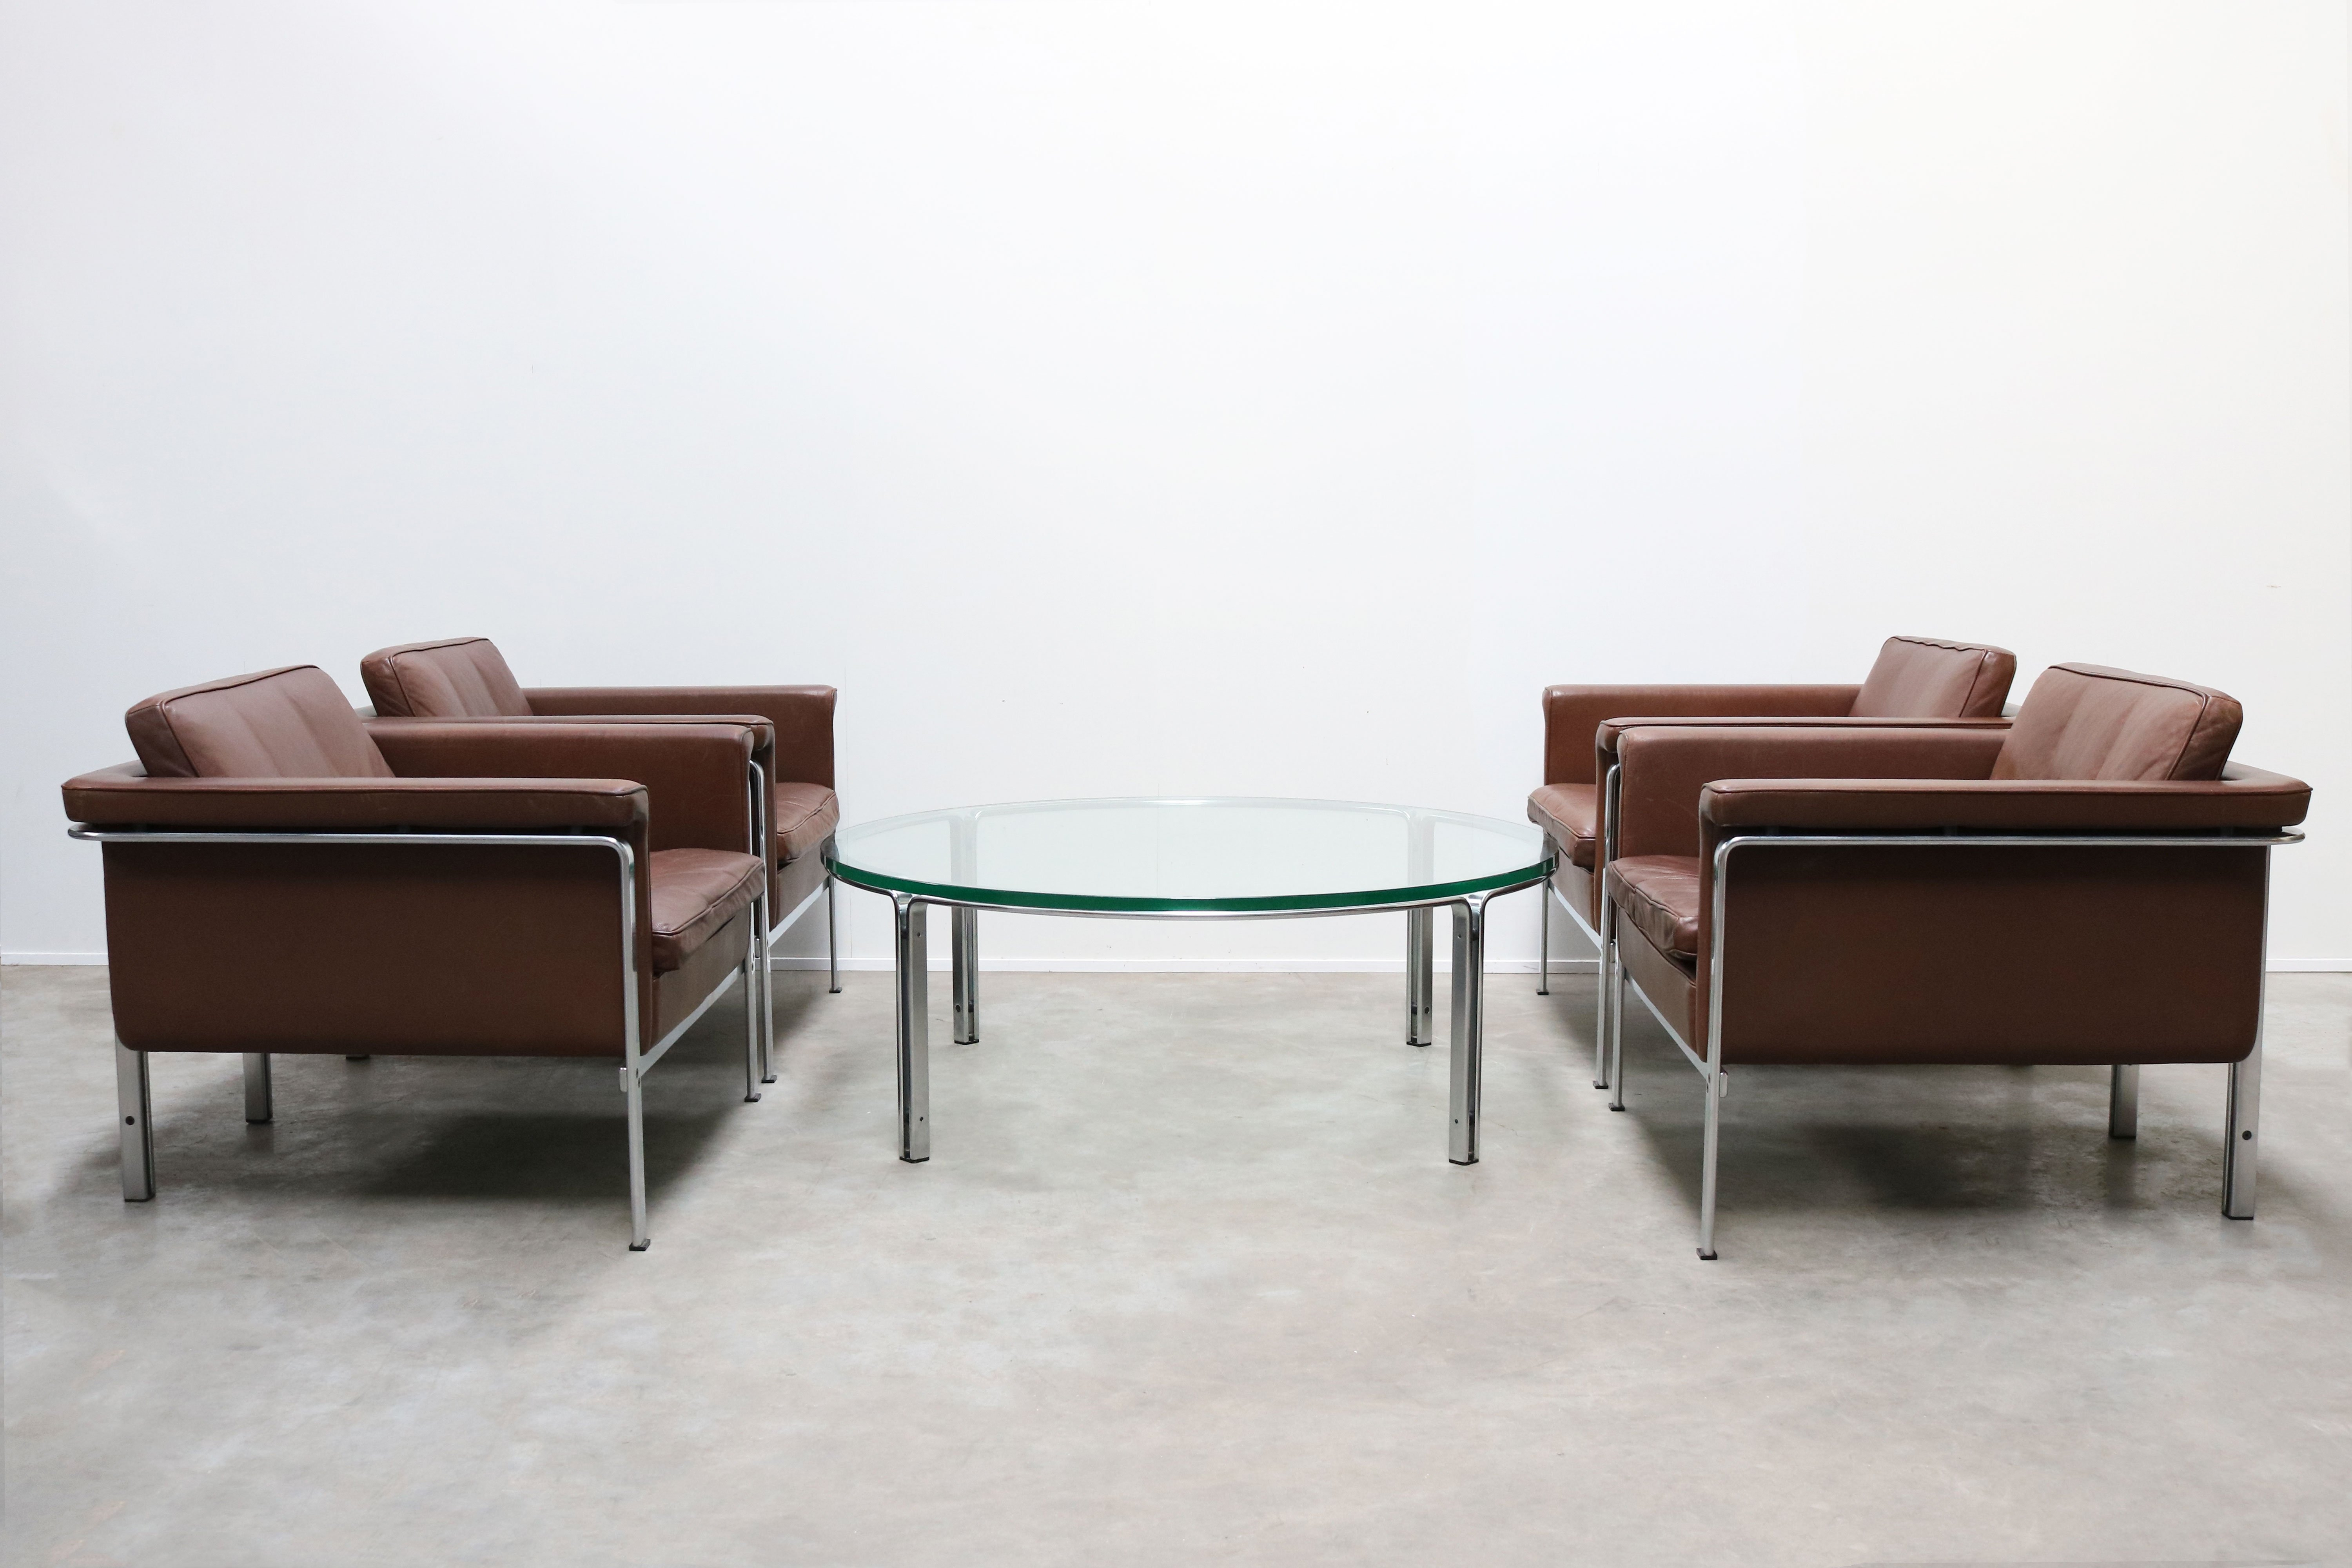 Rare Set Of Lounge Chairs Coffee Table By Horst Bruning For Kill International